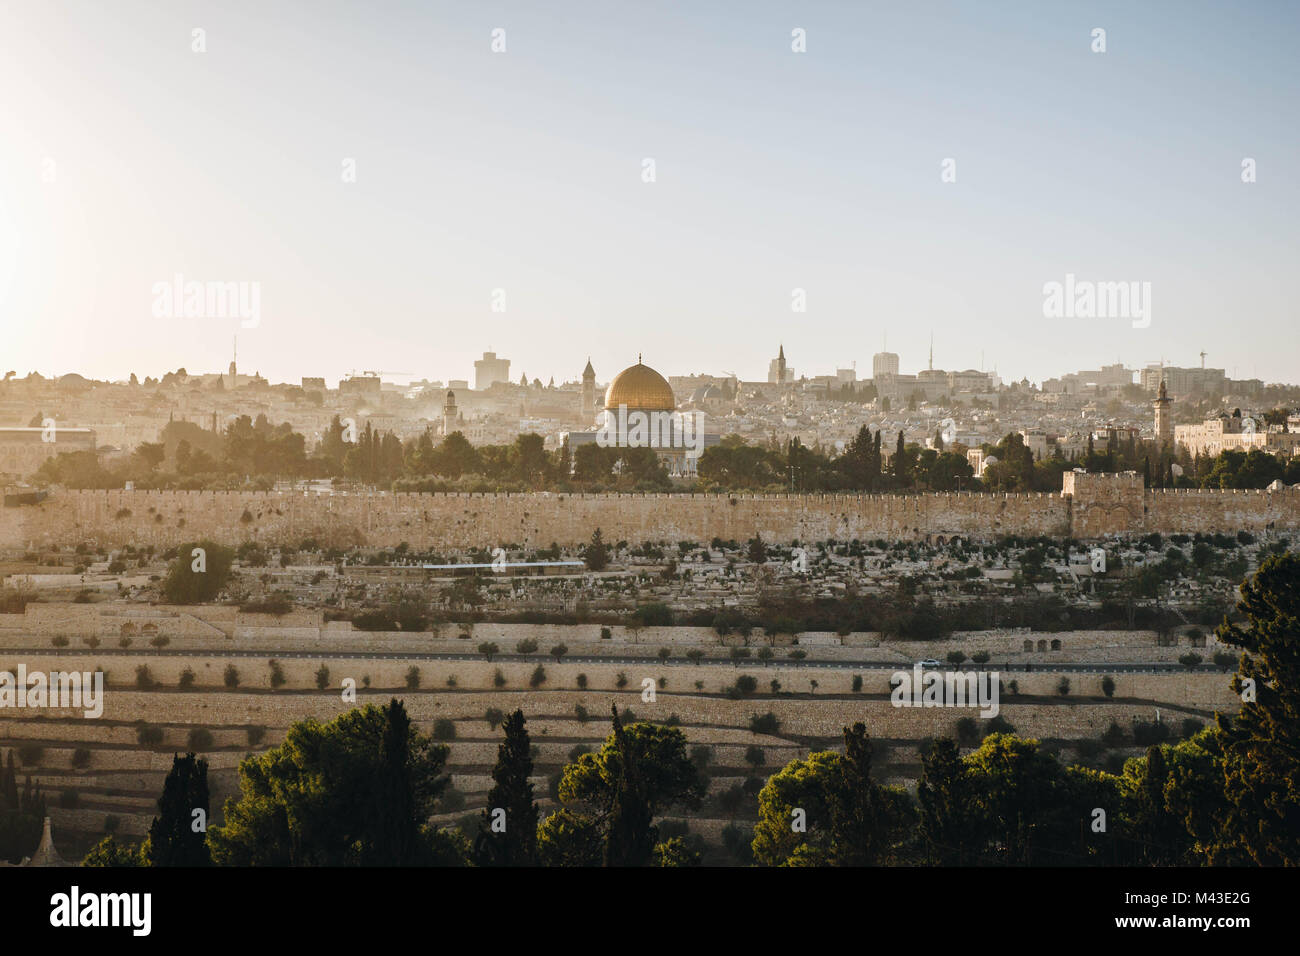 Sunset view of Dome of the Rock on Temple Mount, Jerusalem Stock Photo